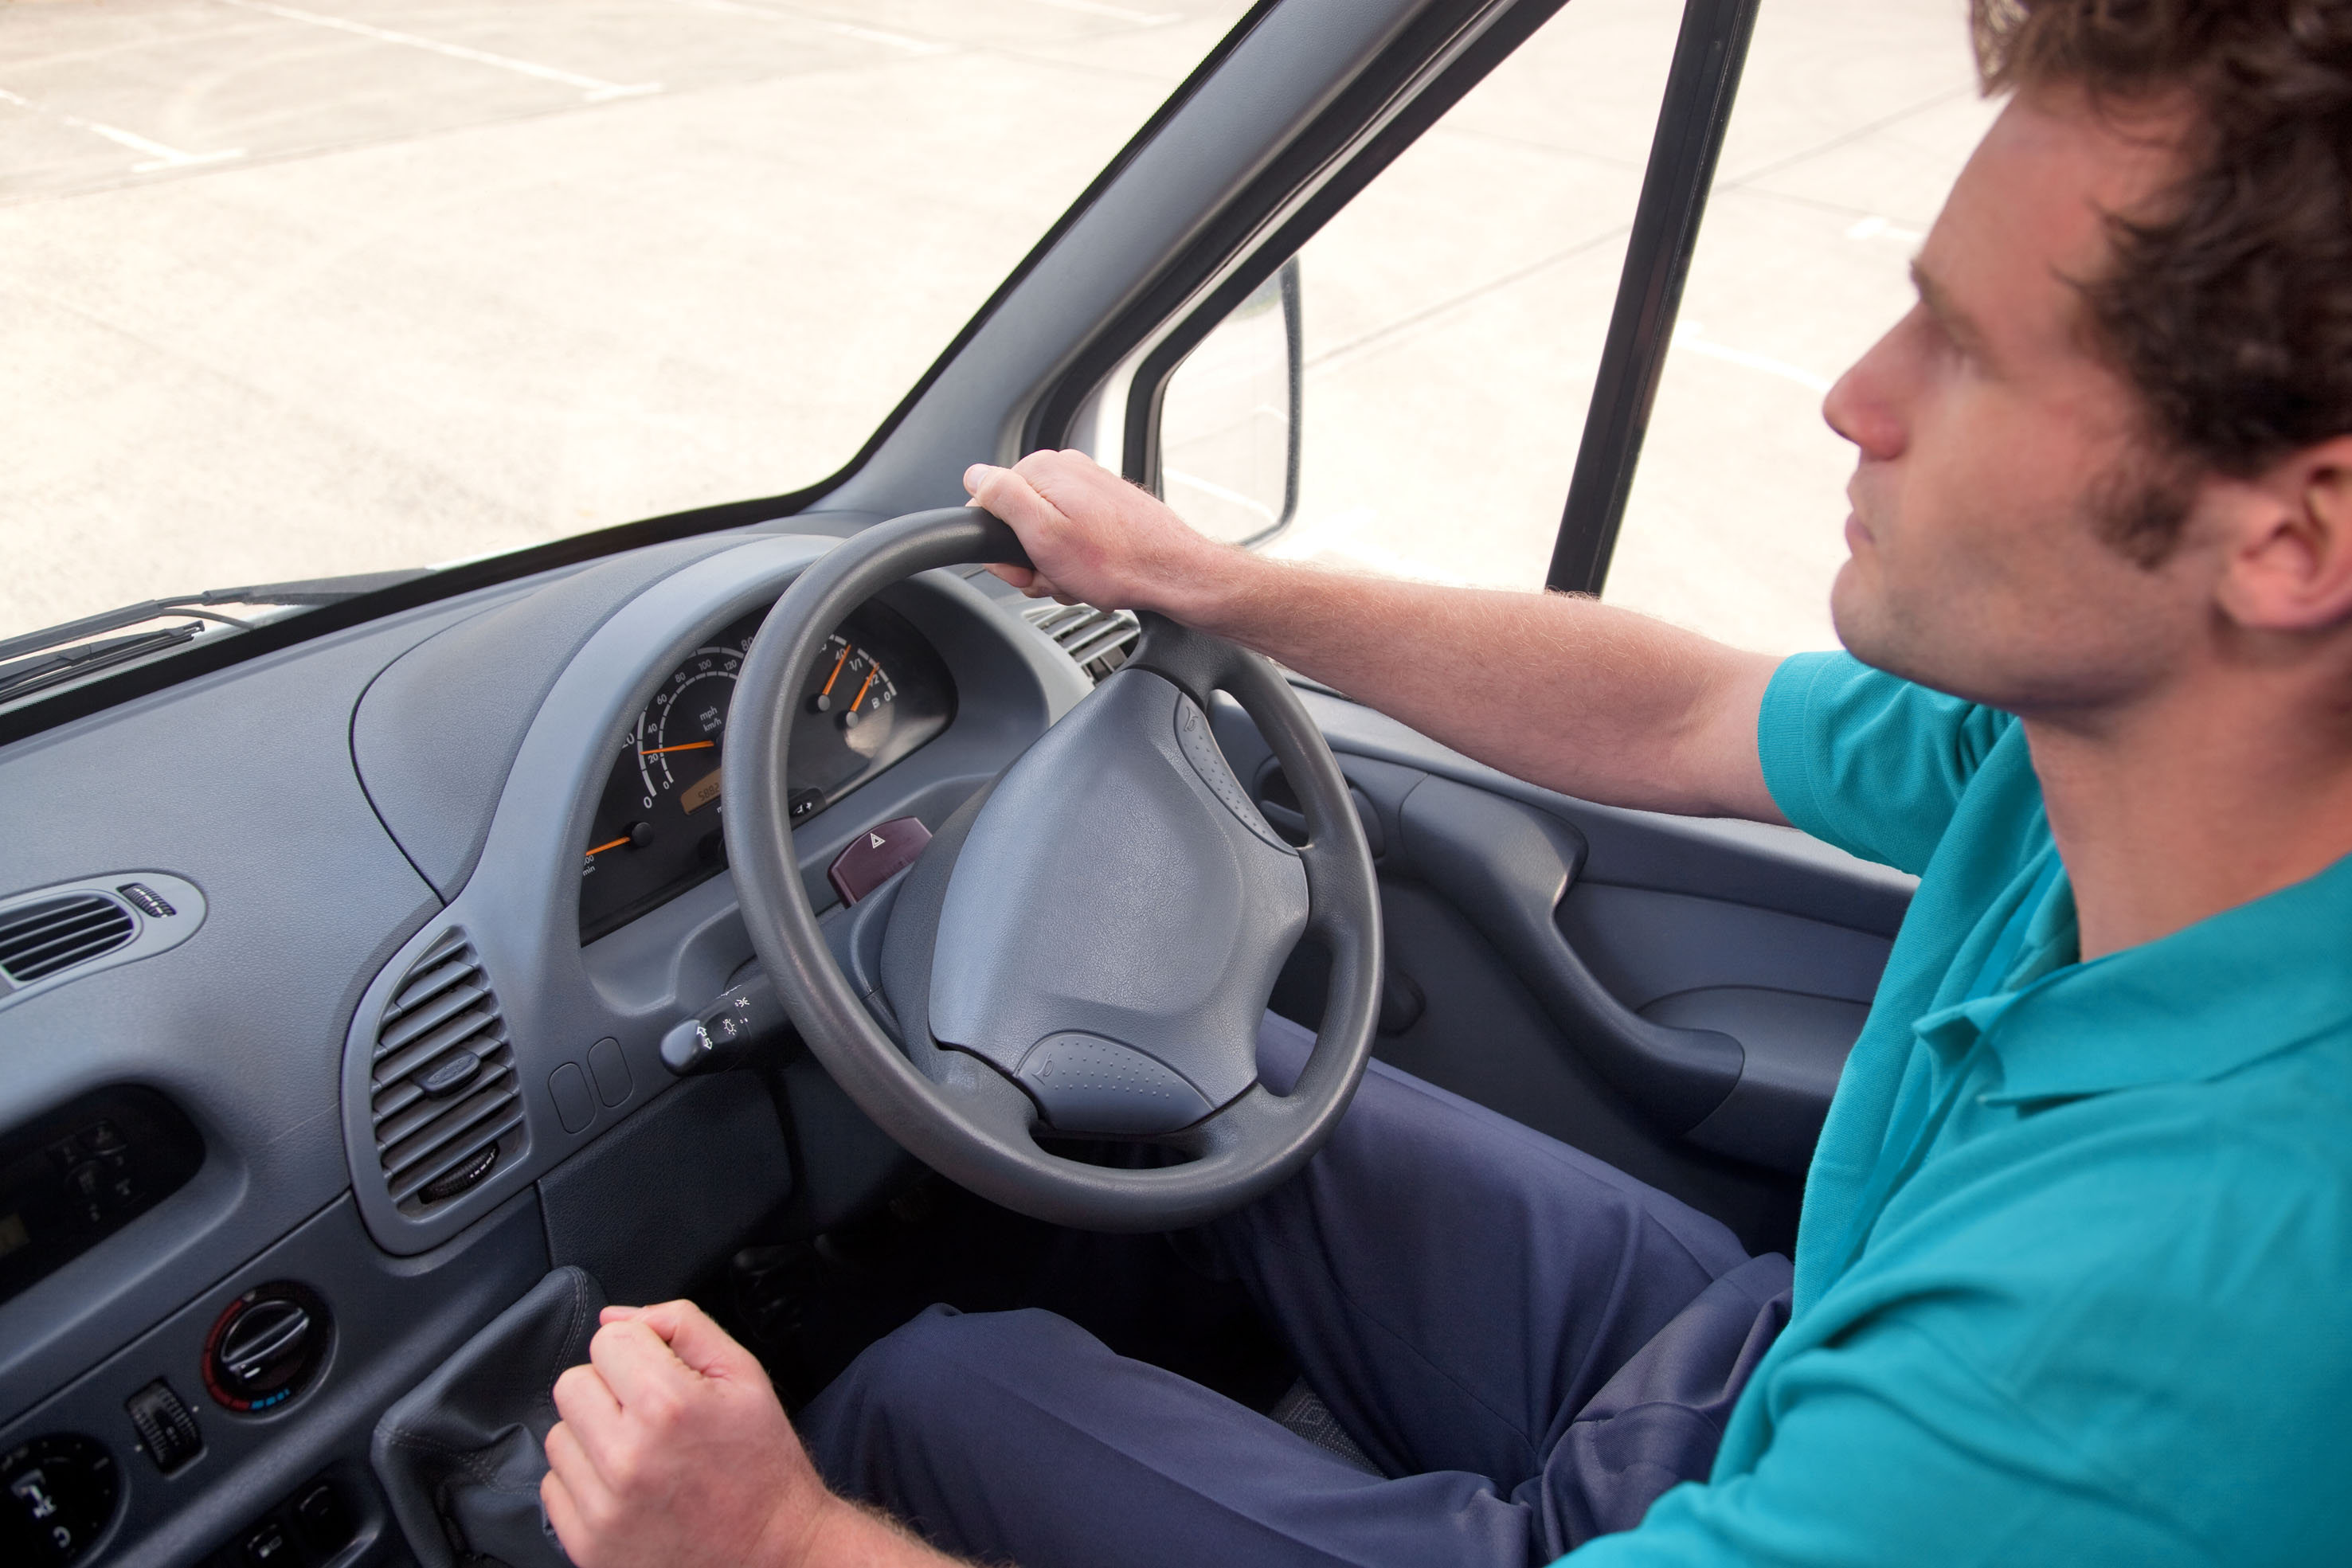 Van drivers: Bad drivers or Scapegoats?